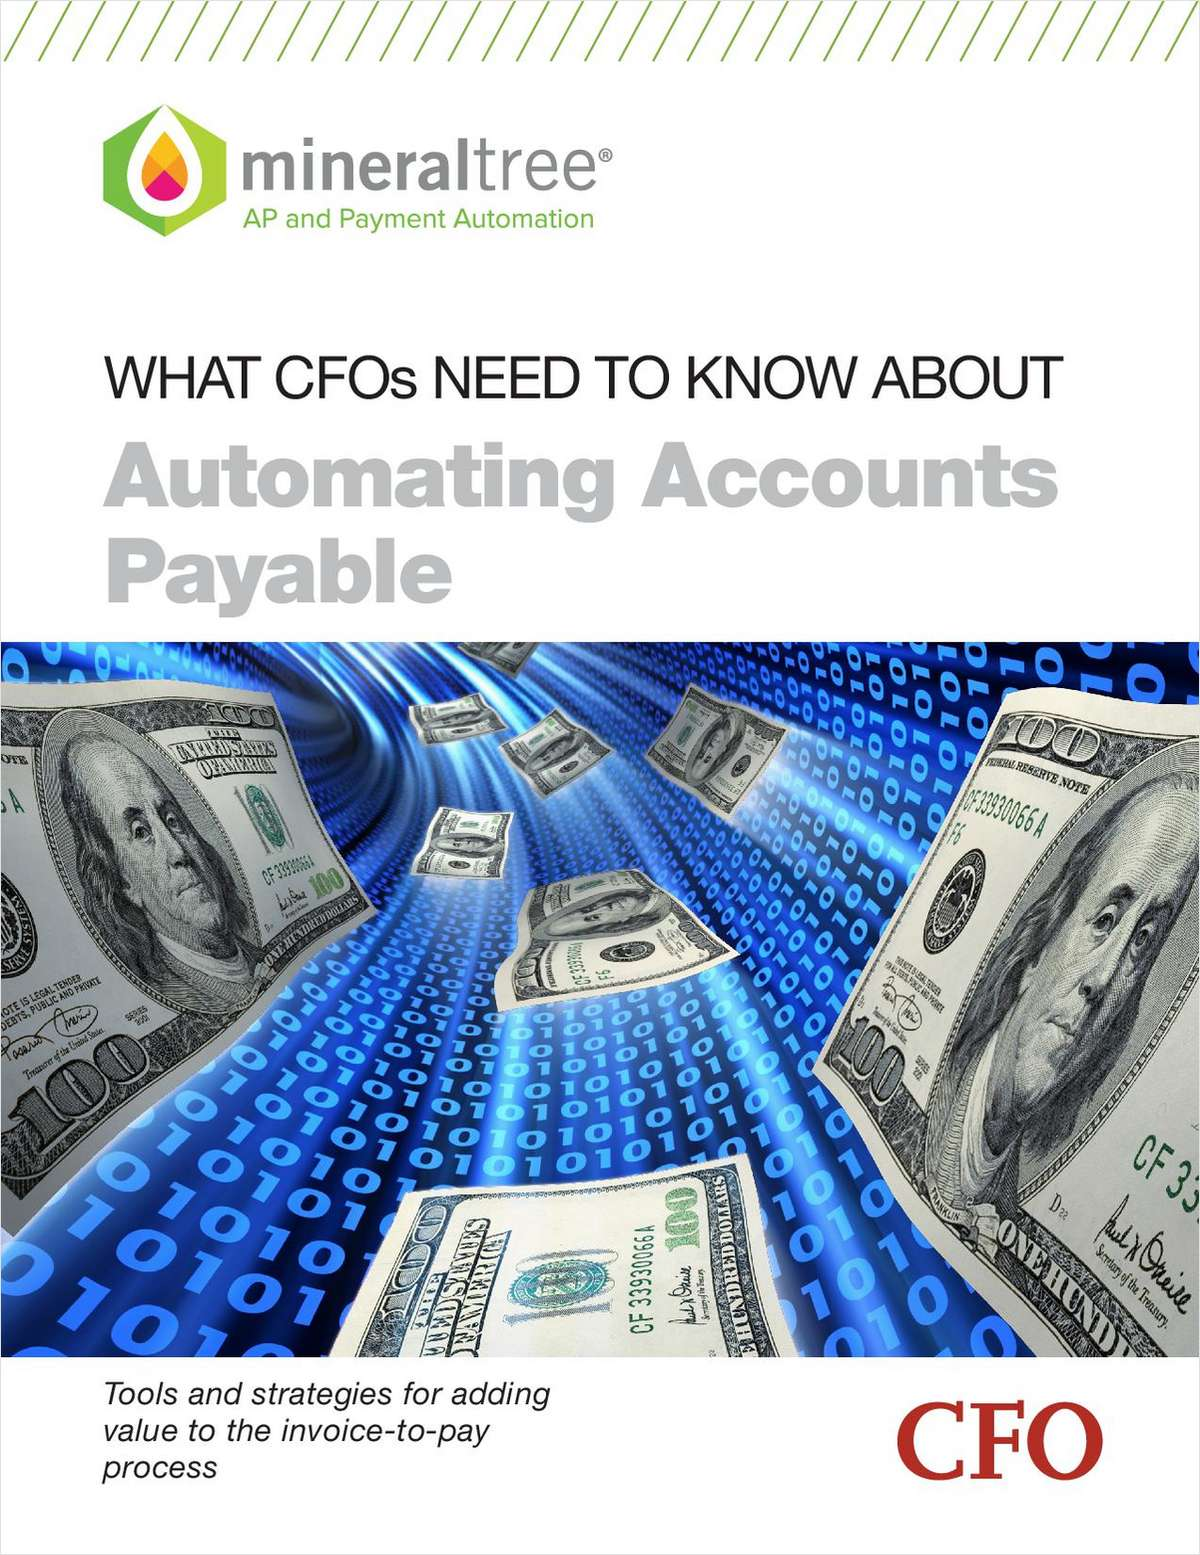 What CFOs Need To Know About Automating Accounts Payable